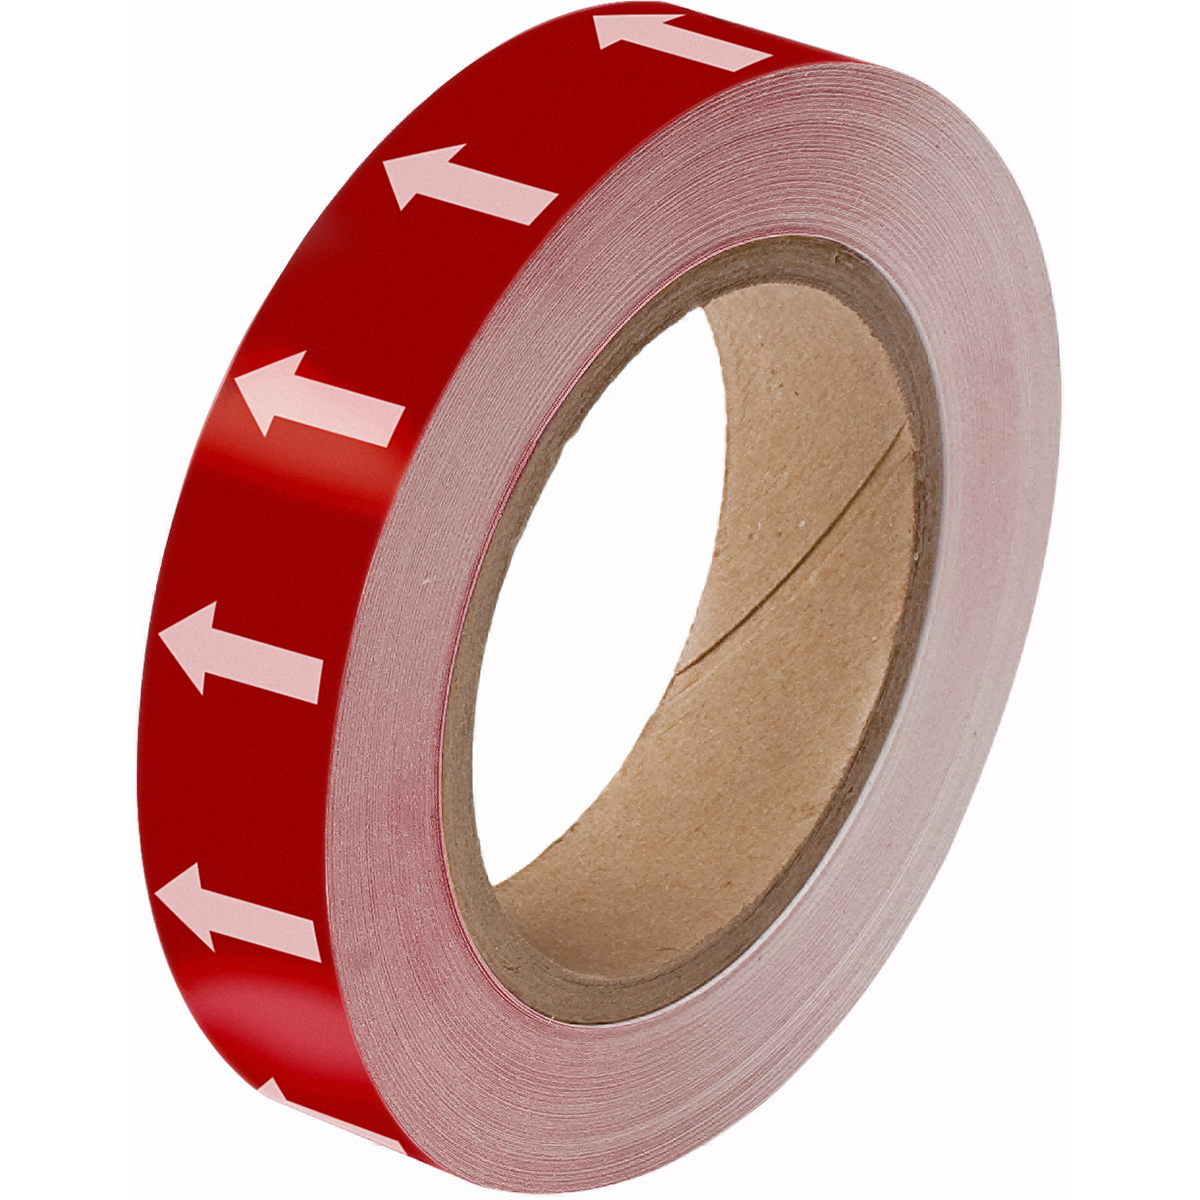 White on Red Directional Flow Arrow Tape